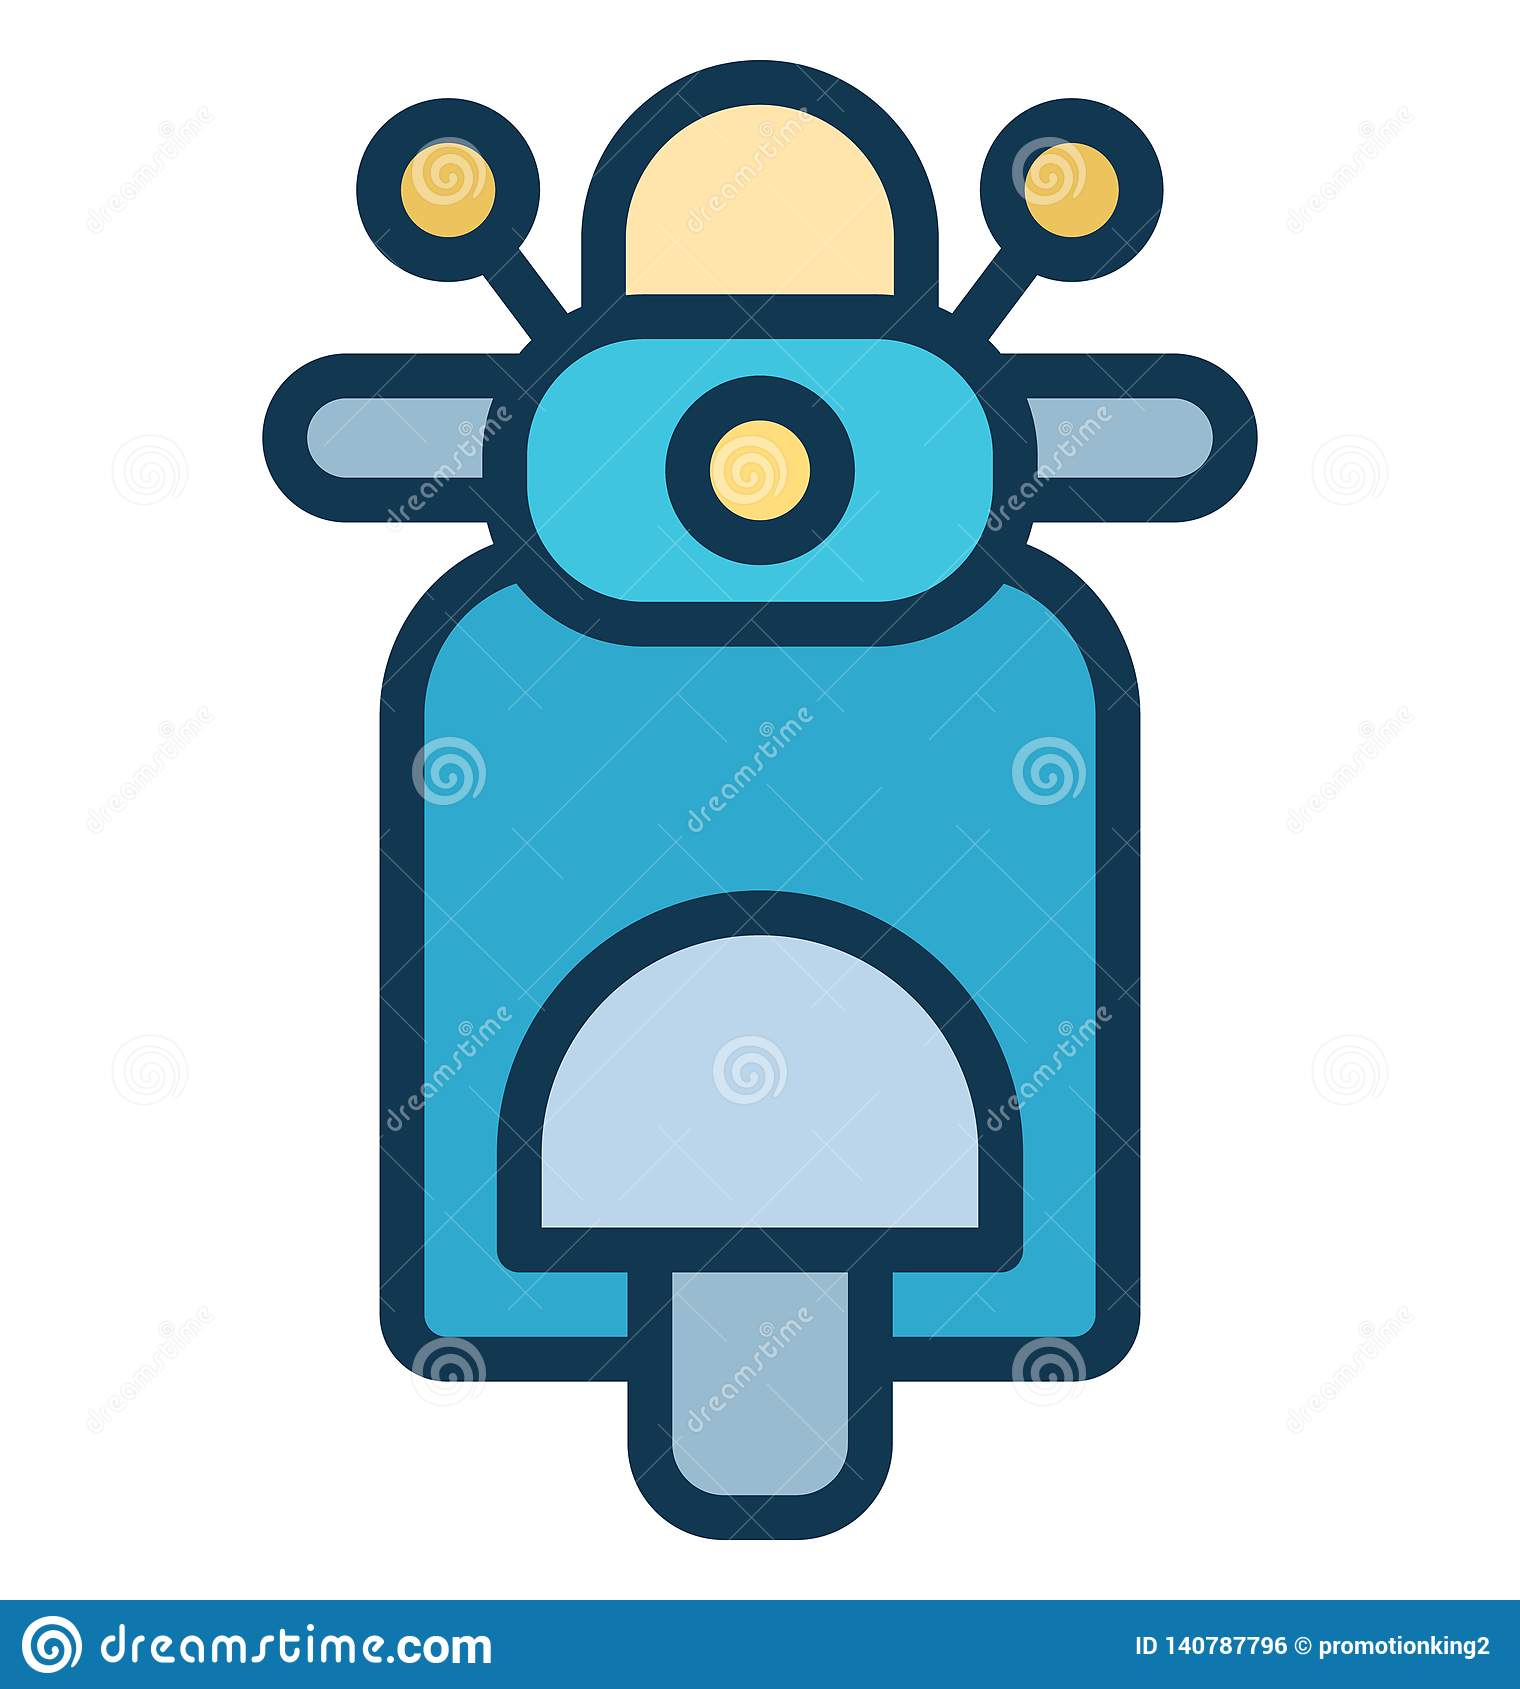 Motorcycle Vector icon which can be easily modified or edit in any color